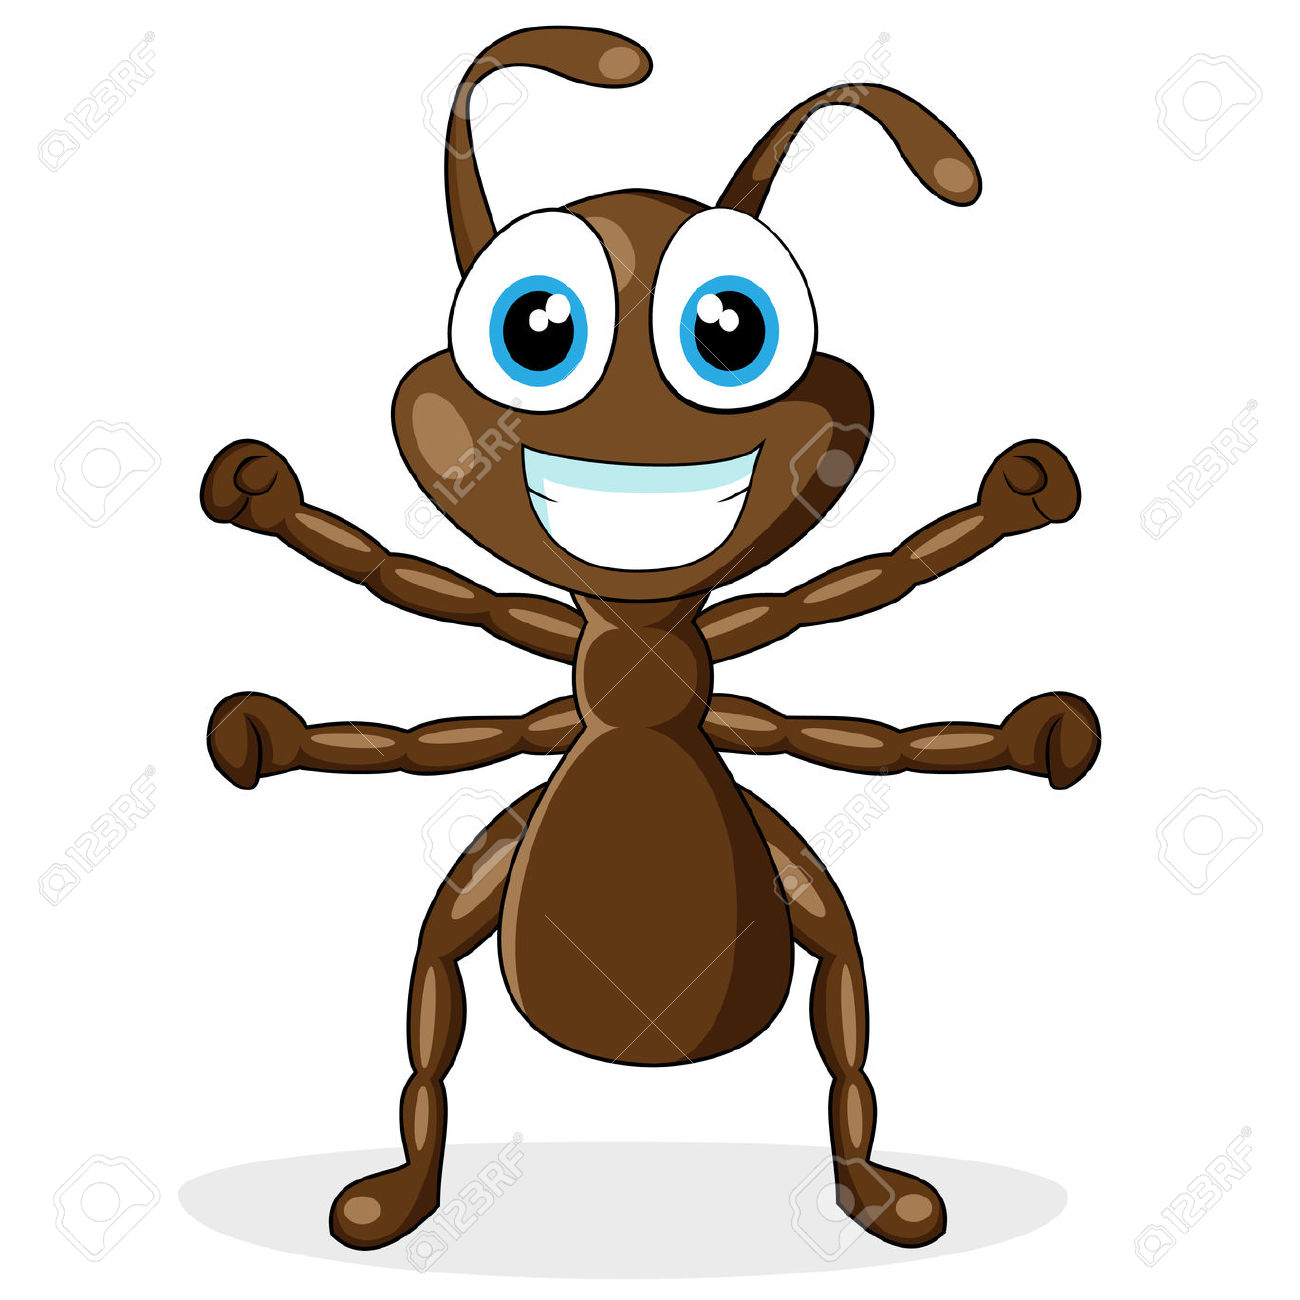 ant clipart, funny clipart ant pencil and color funny clipart ant #31579